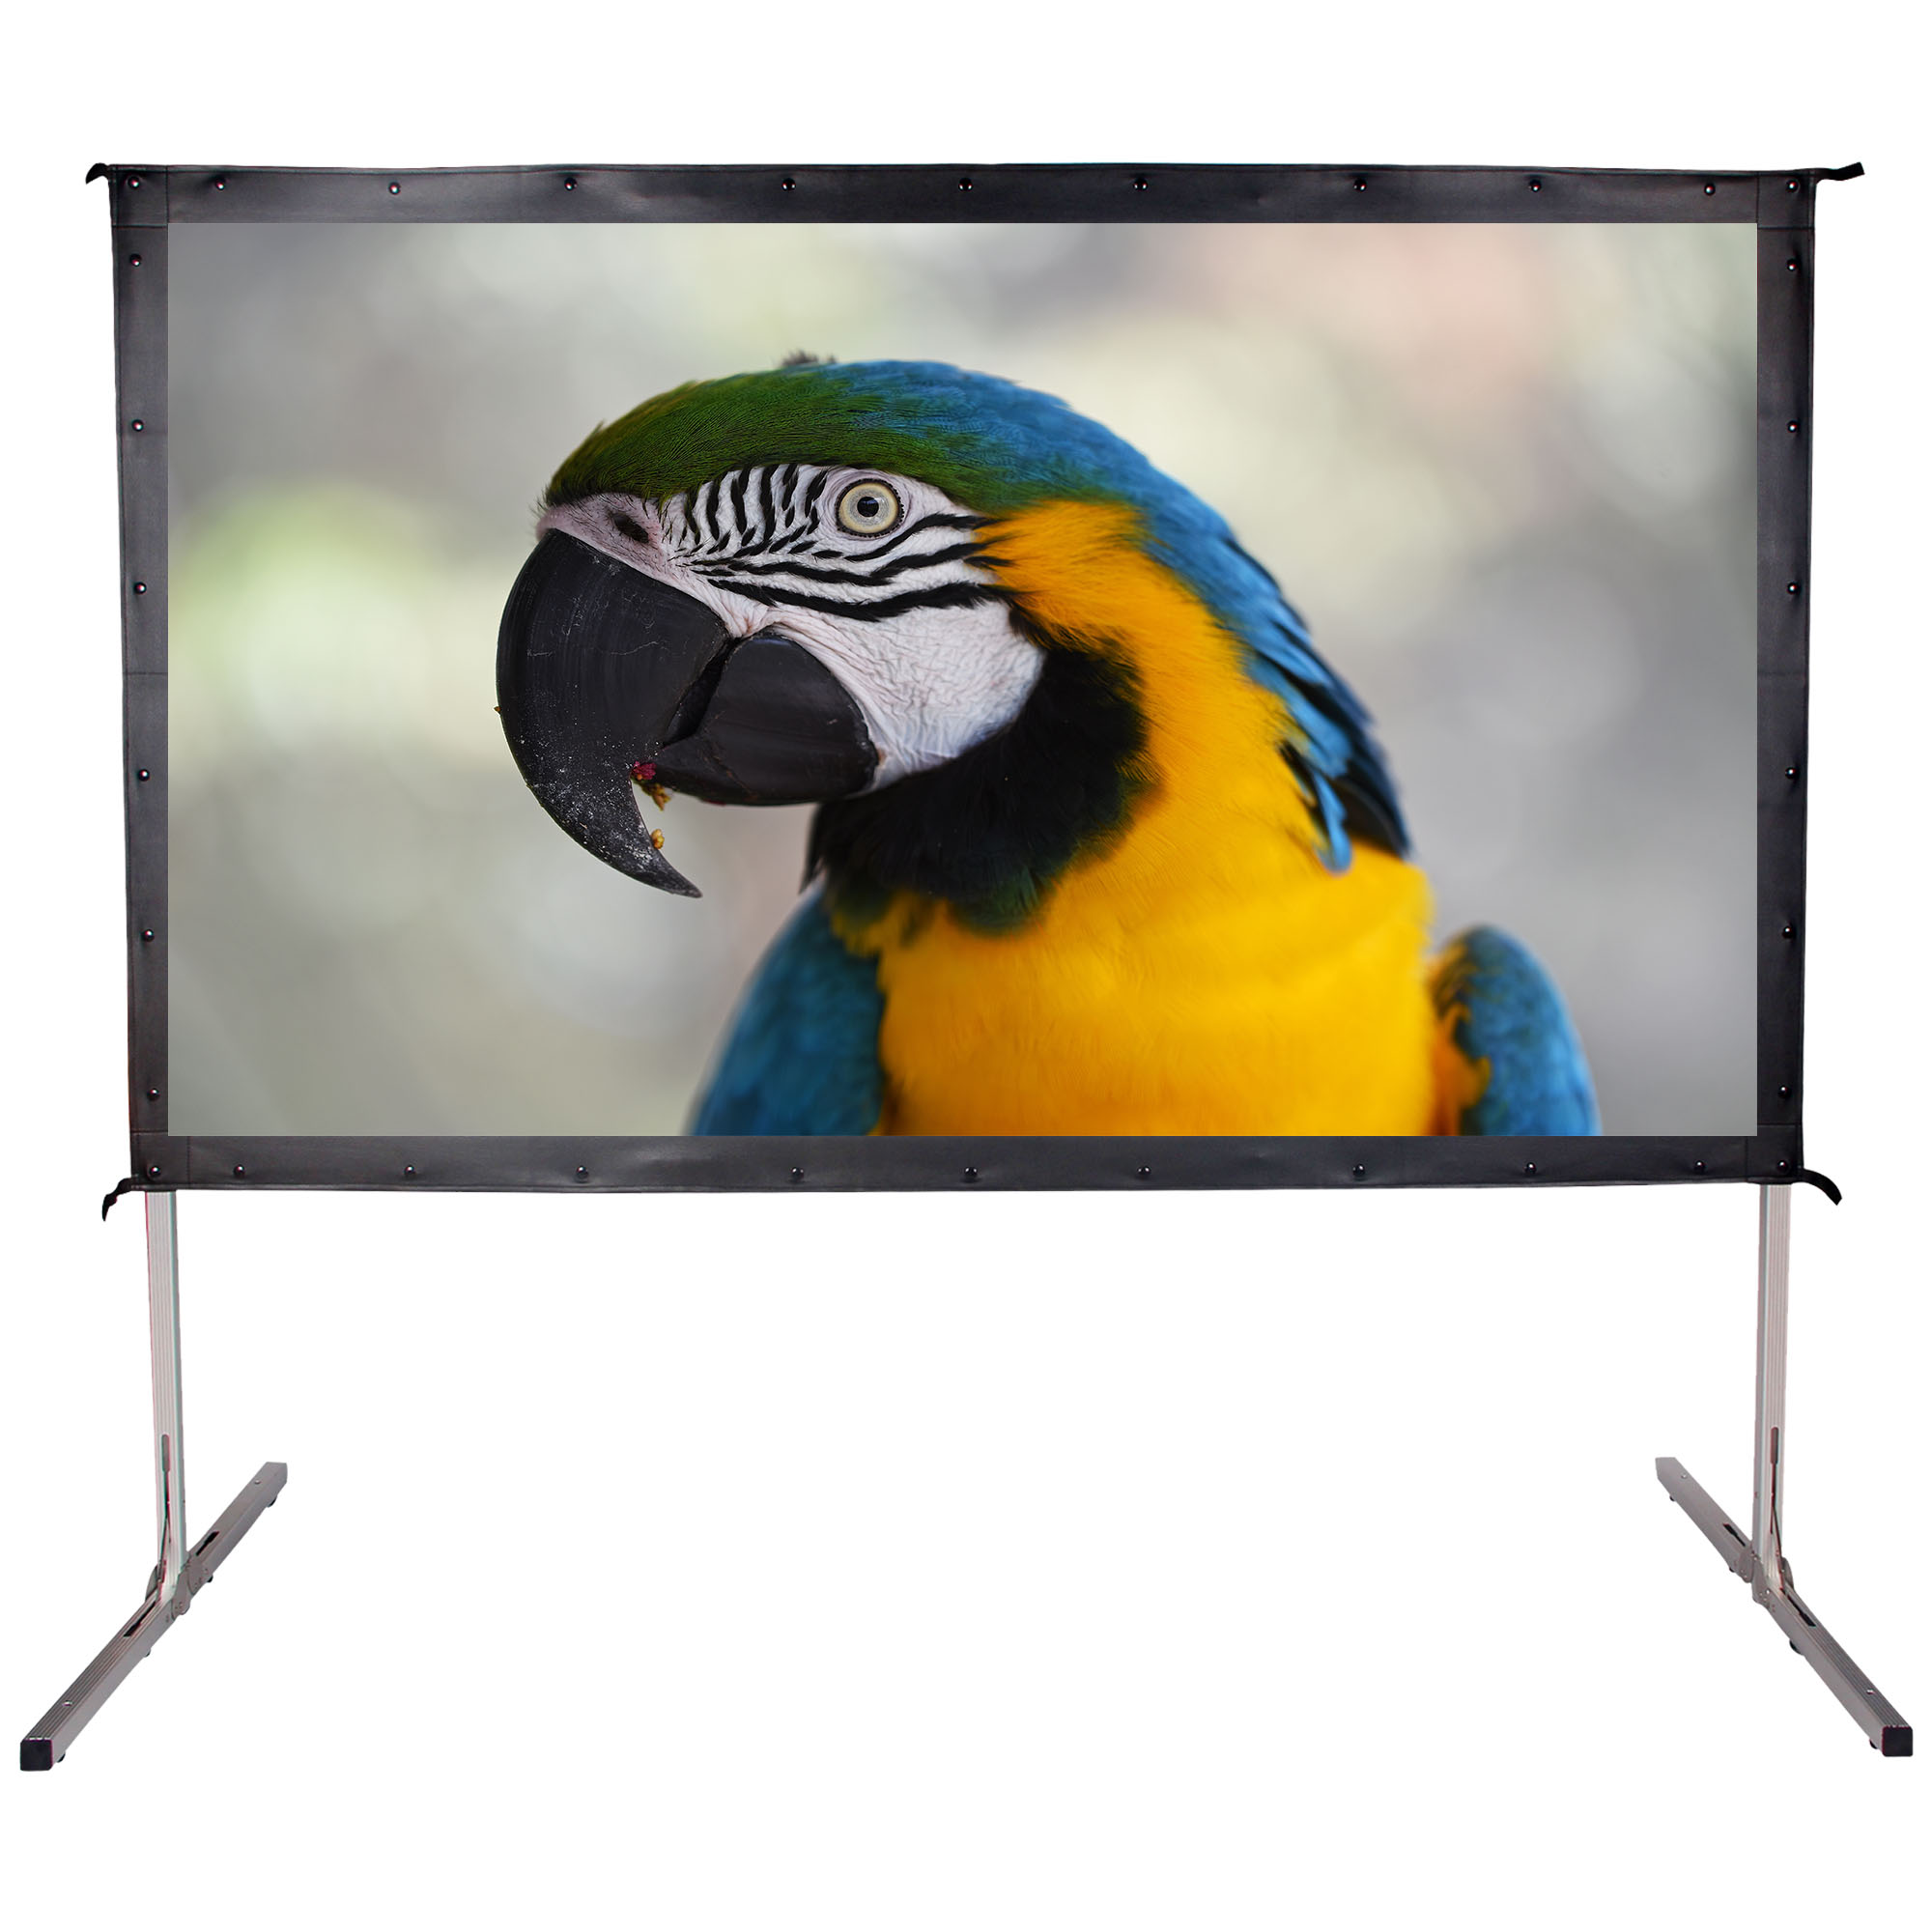 """Cloud Mountain 90"""" 16:9 HD Projector Screen 4K Movie Theater Ready Portable Foldaway Projector Screen Front Projection"""